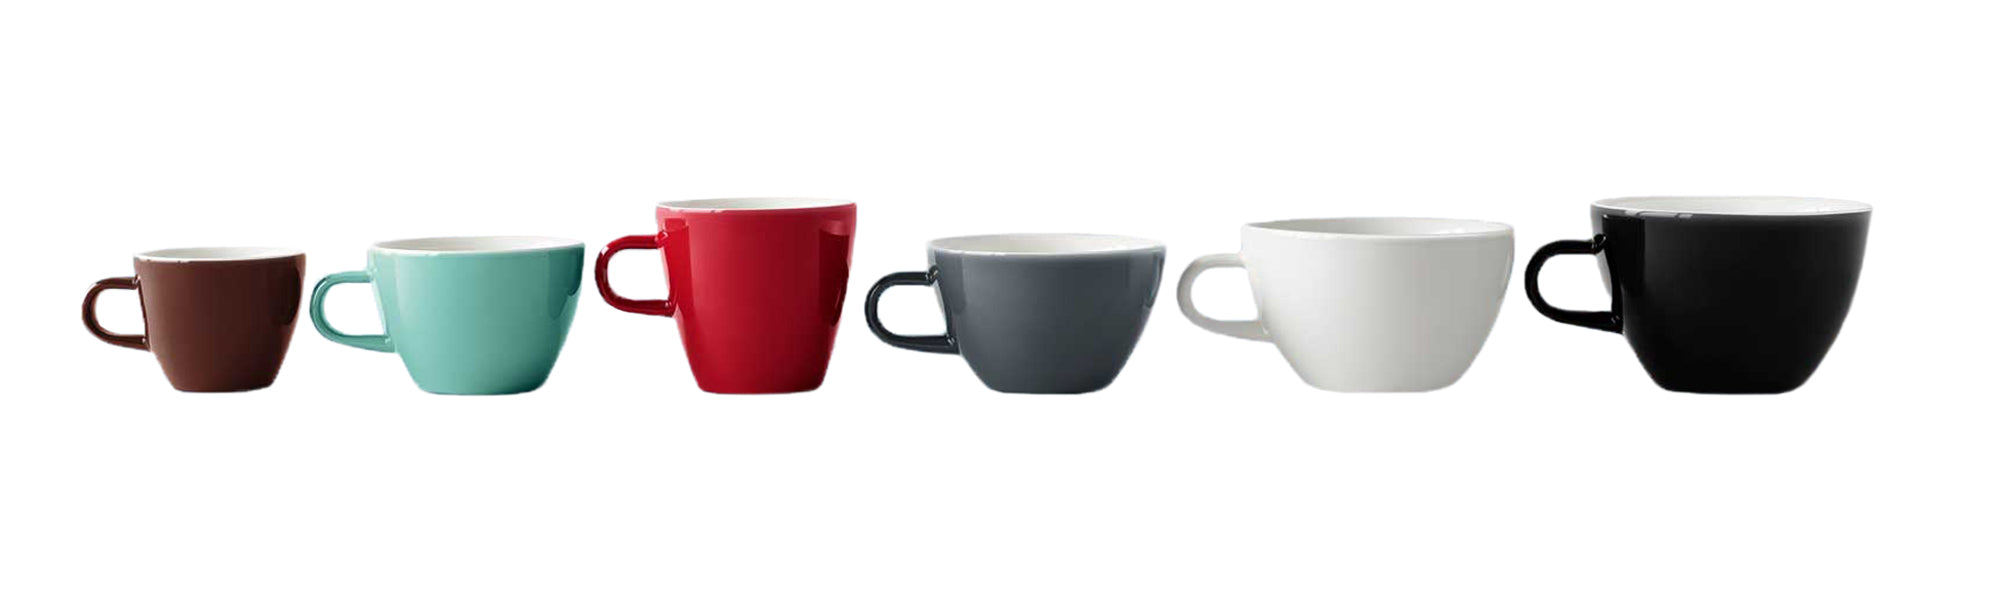 Acme Ceramic Cups